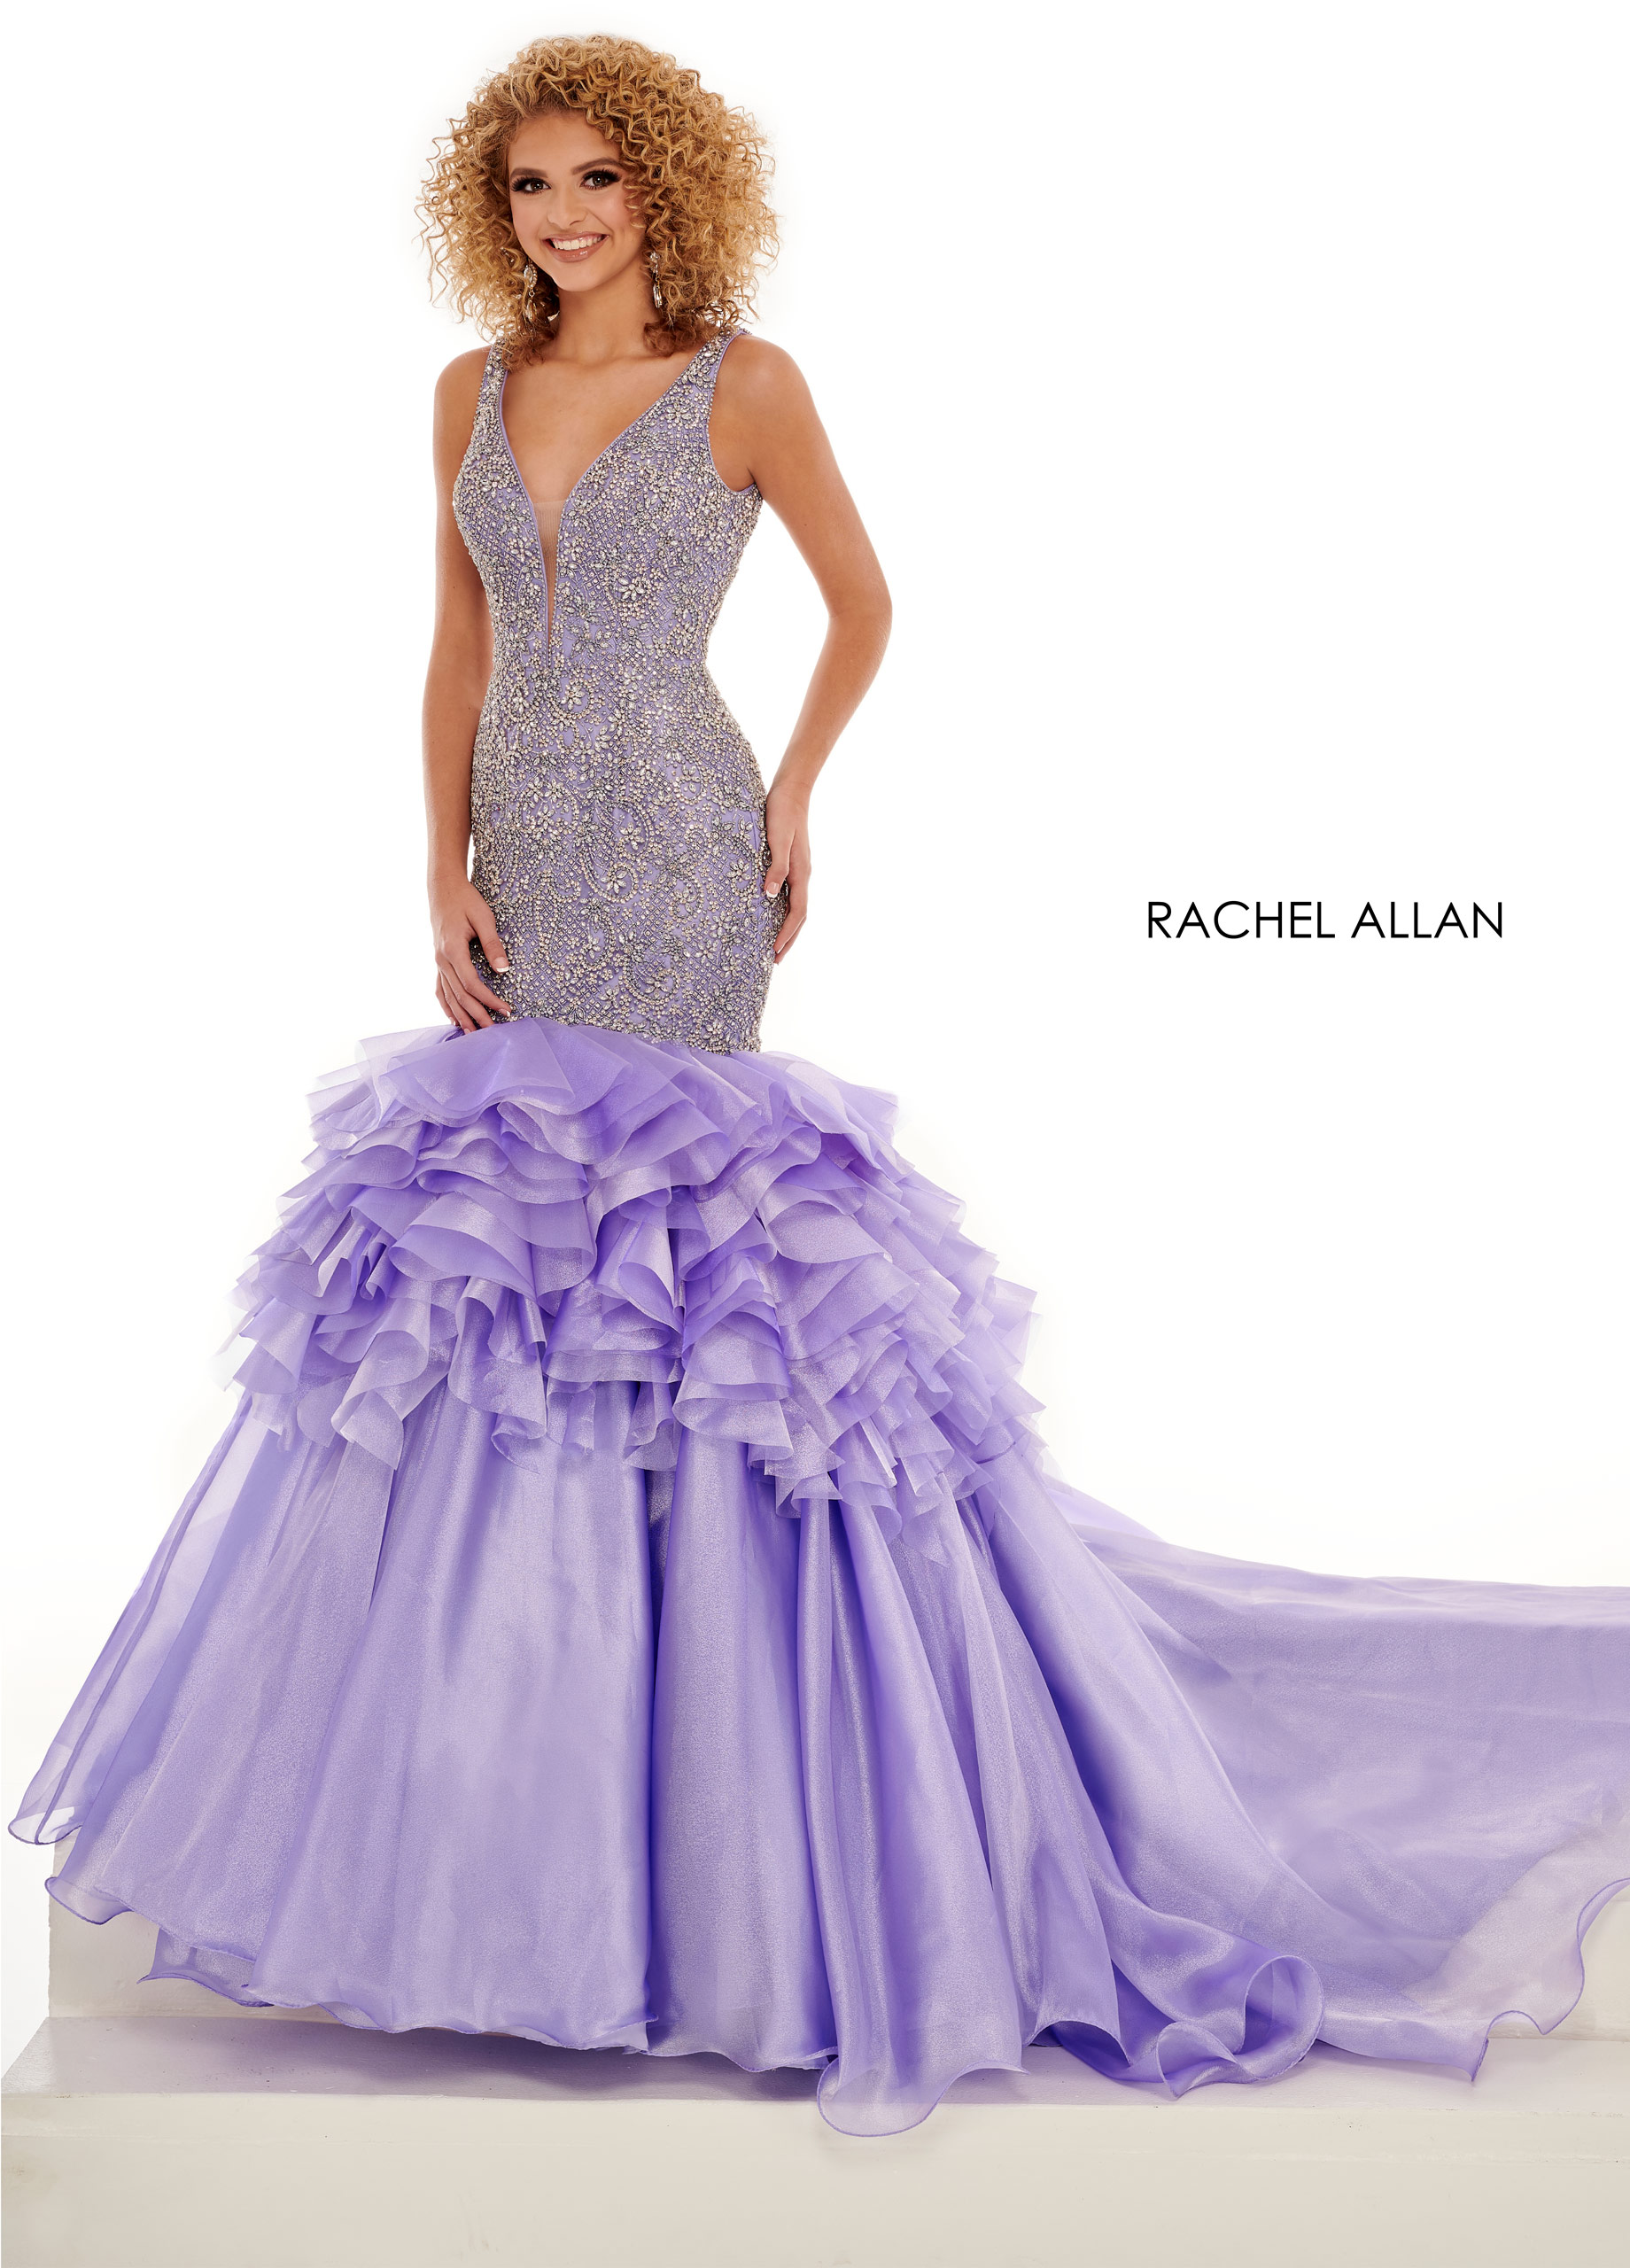 V-Neck Mermaid Pageant Dresses in Lilac Color